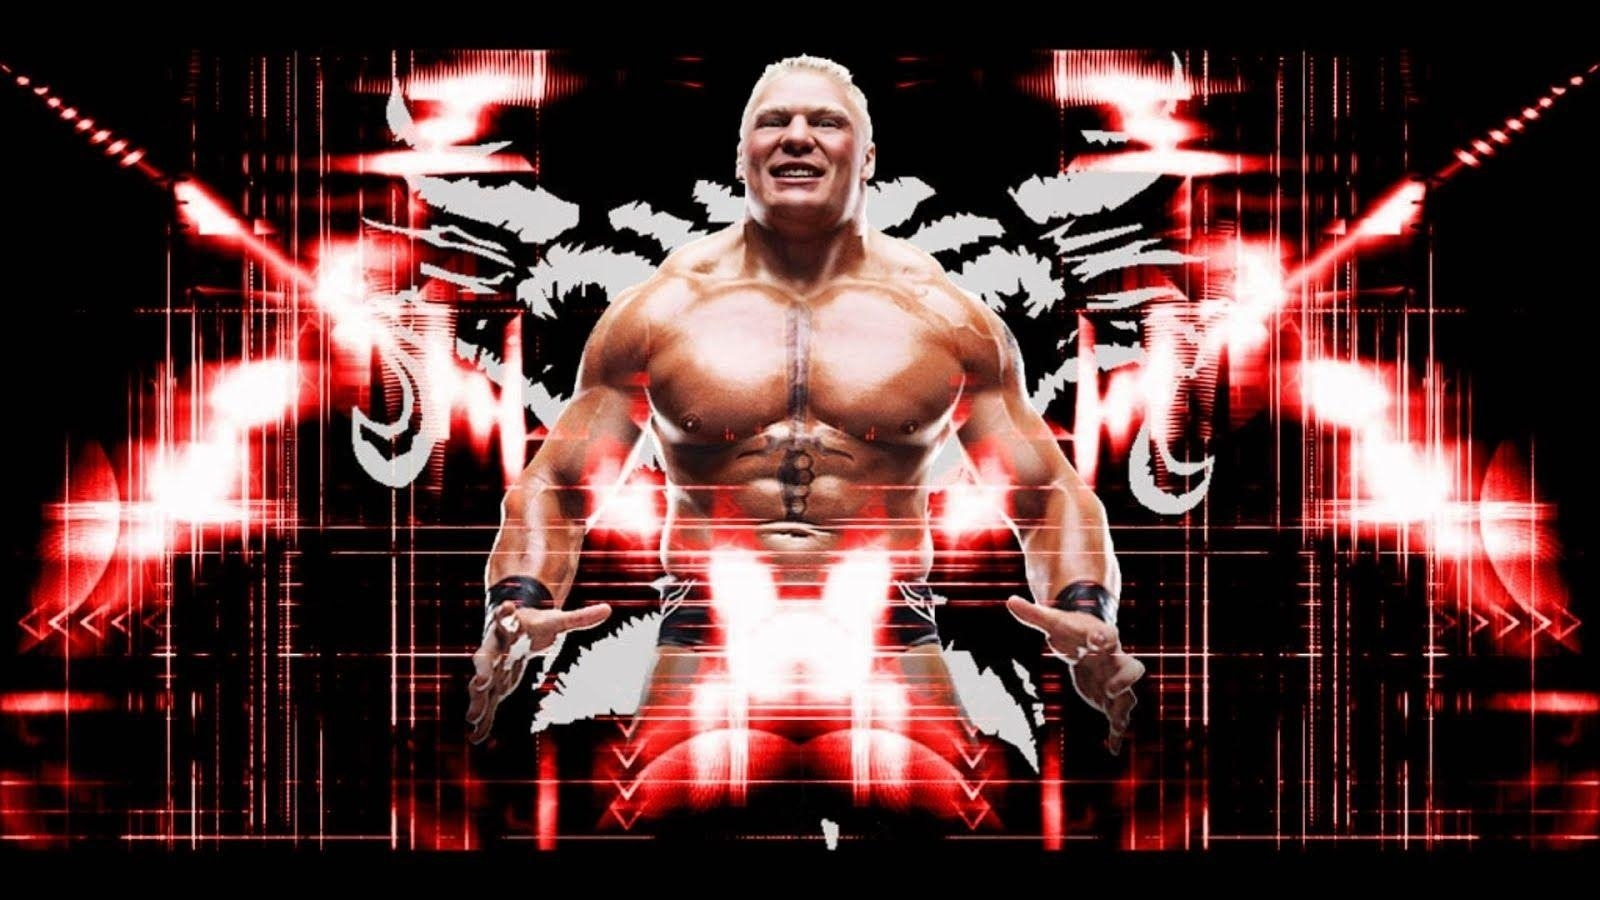 brock lesnar wallpapers 2015 - wallpaper cave